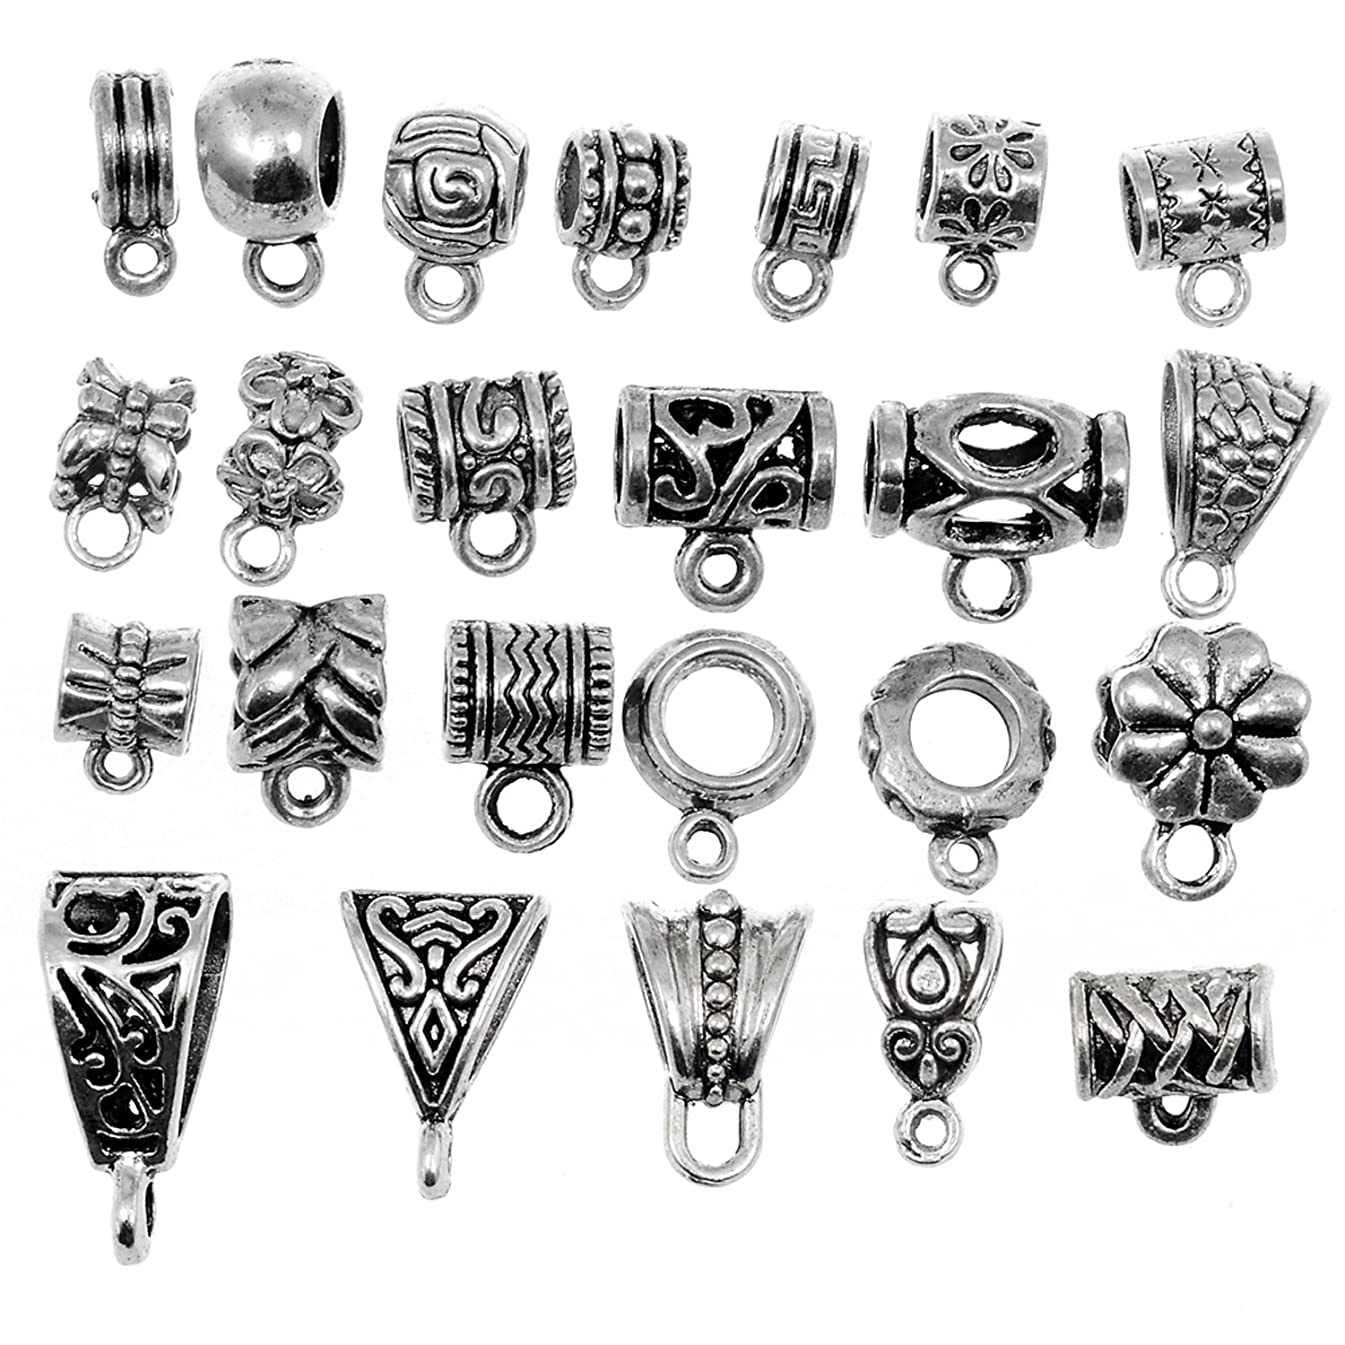 RUBYCA 24Pcs Mix Tibetan Silver Color Connectors Bails Beads fit European Charm Bracelet Pendant